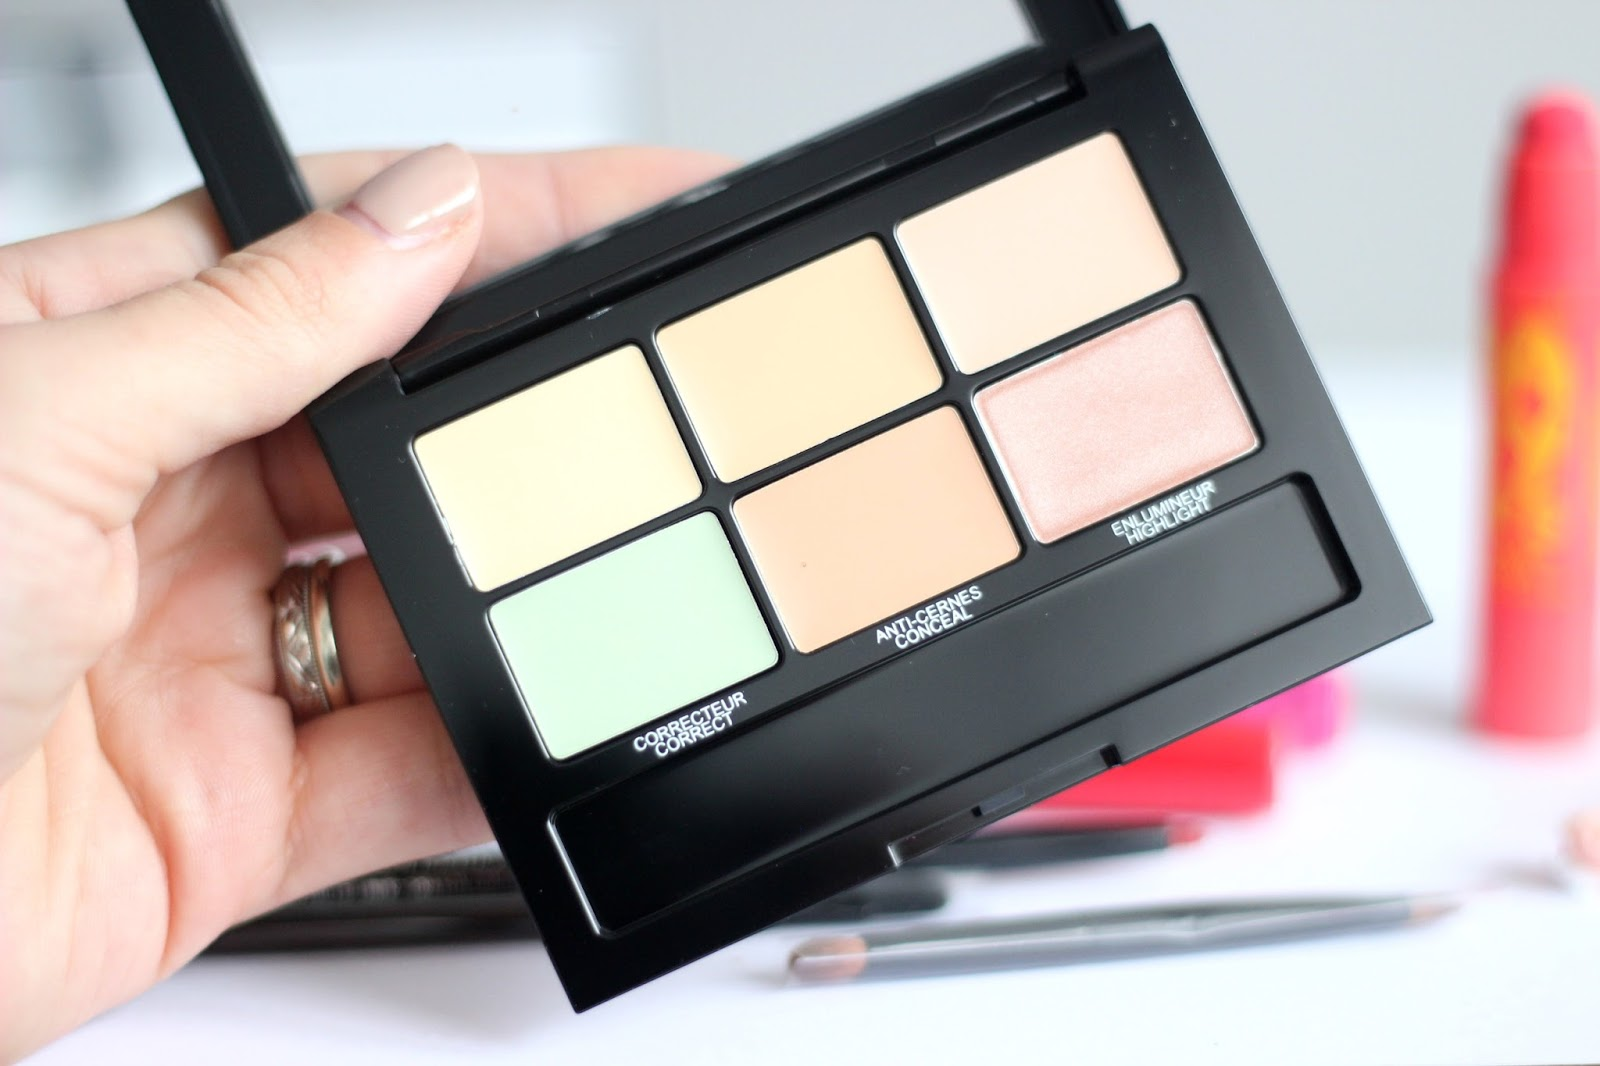 Maybelline Master Camo Colour Correcting Palette in Light